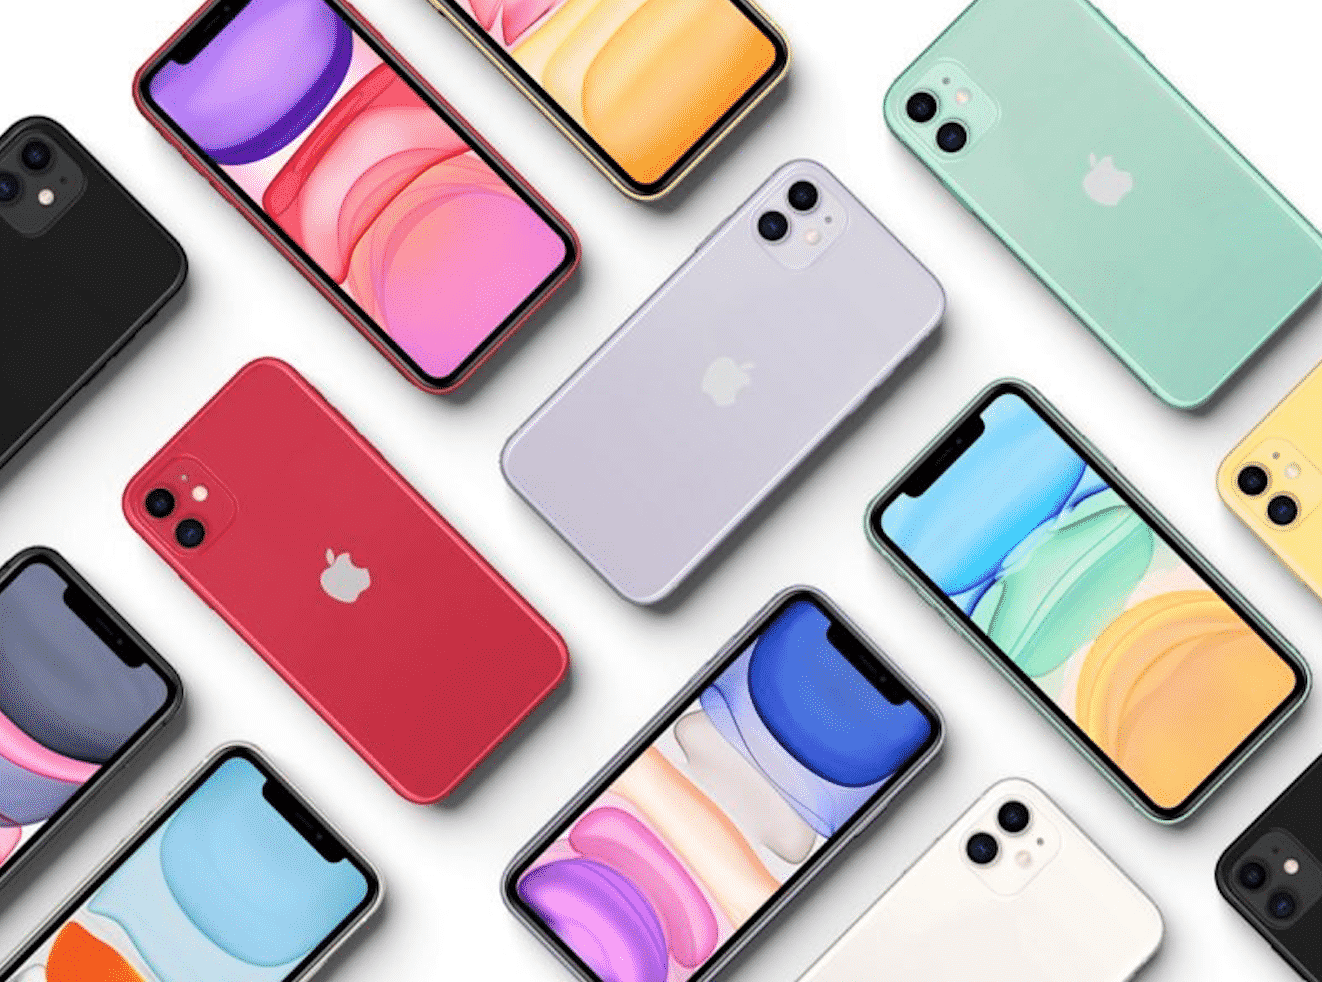 This is the iPhone 11 device by Apple.